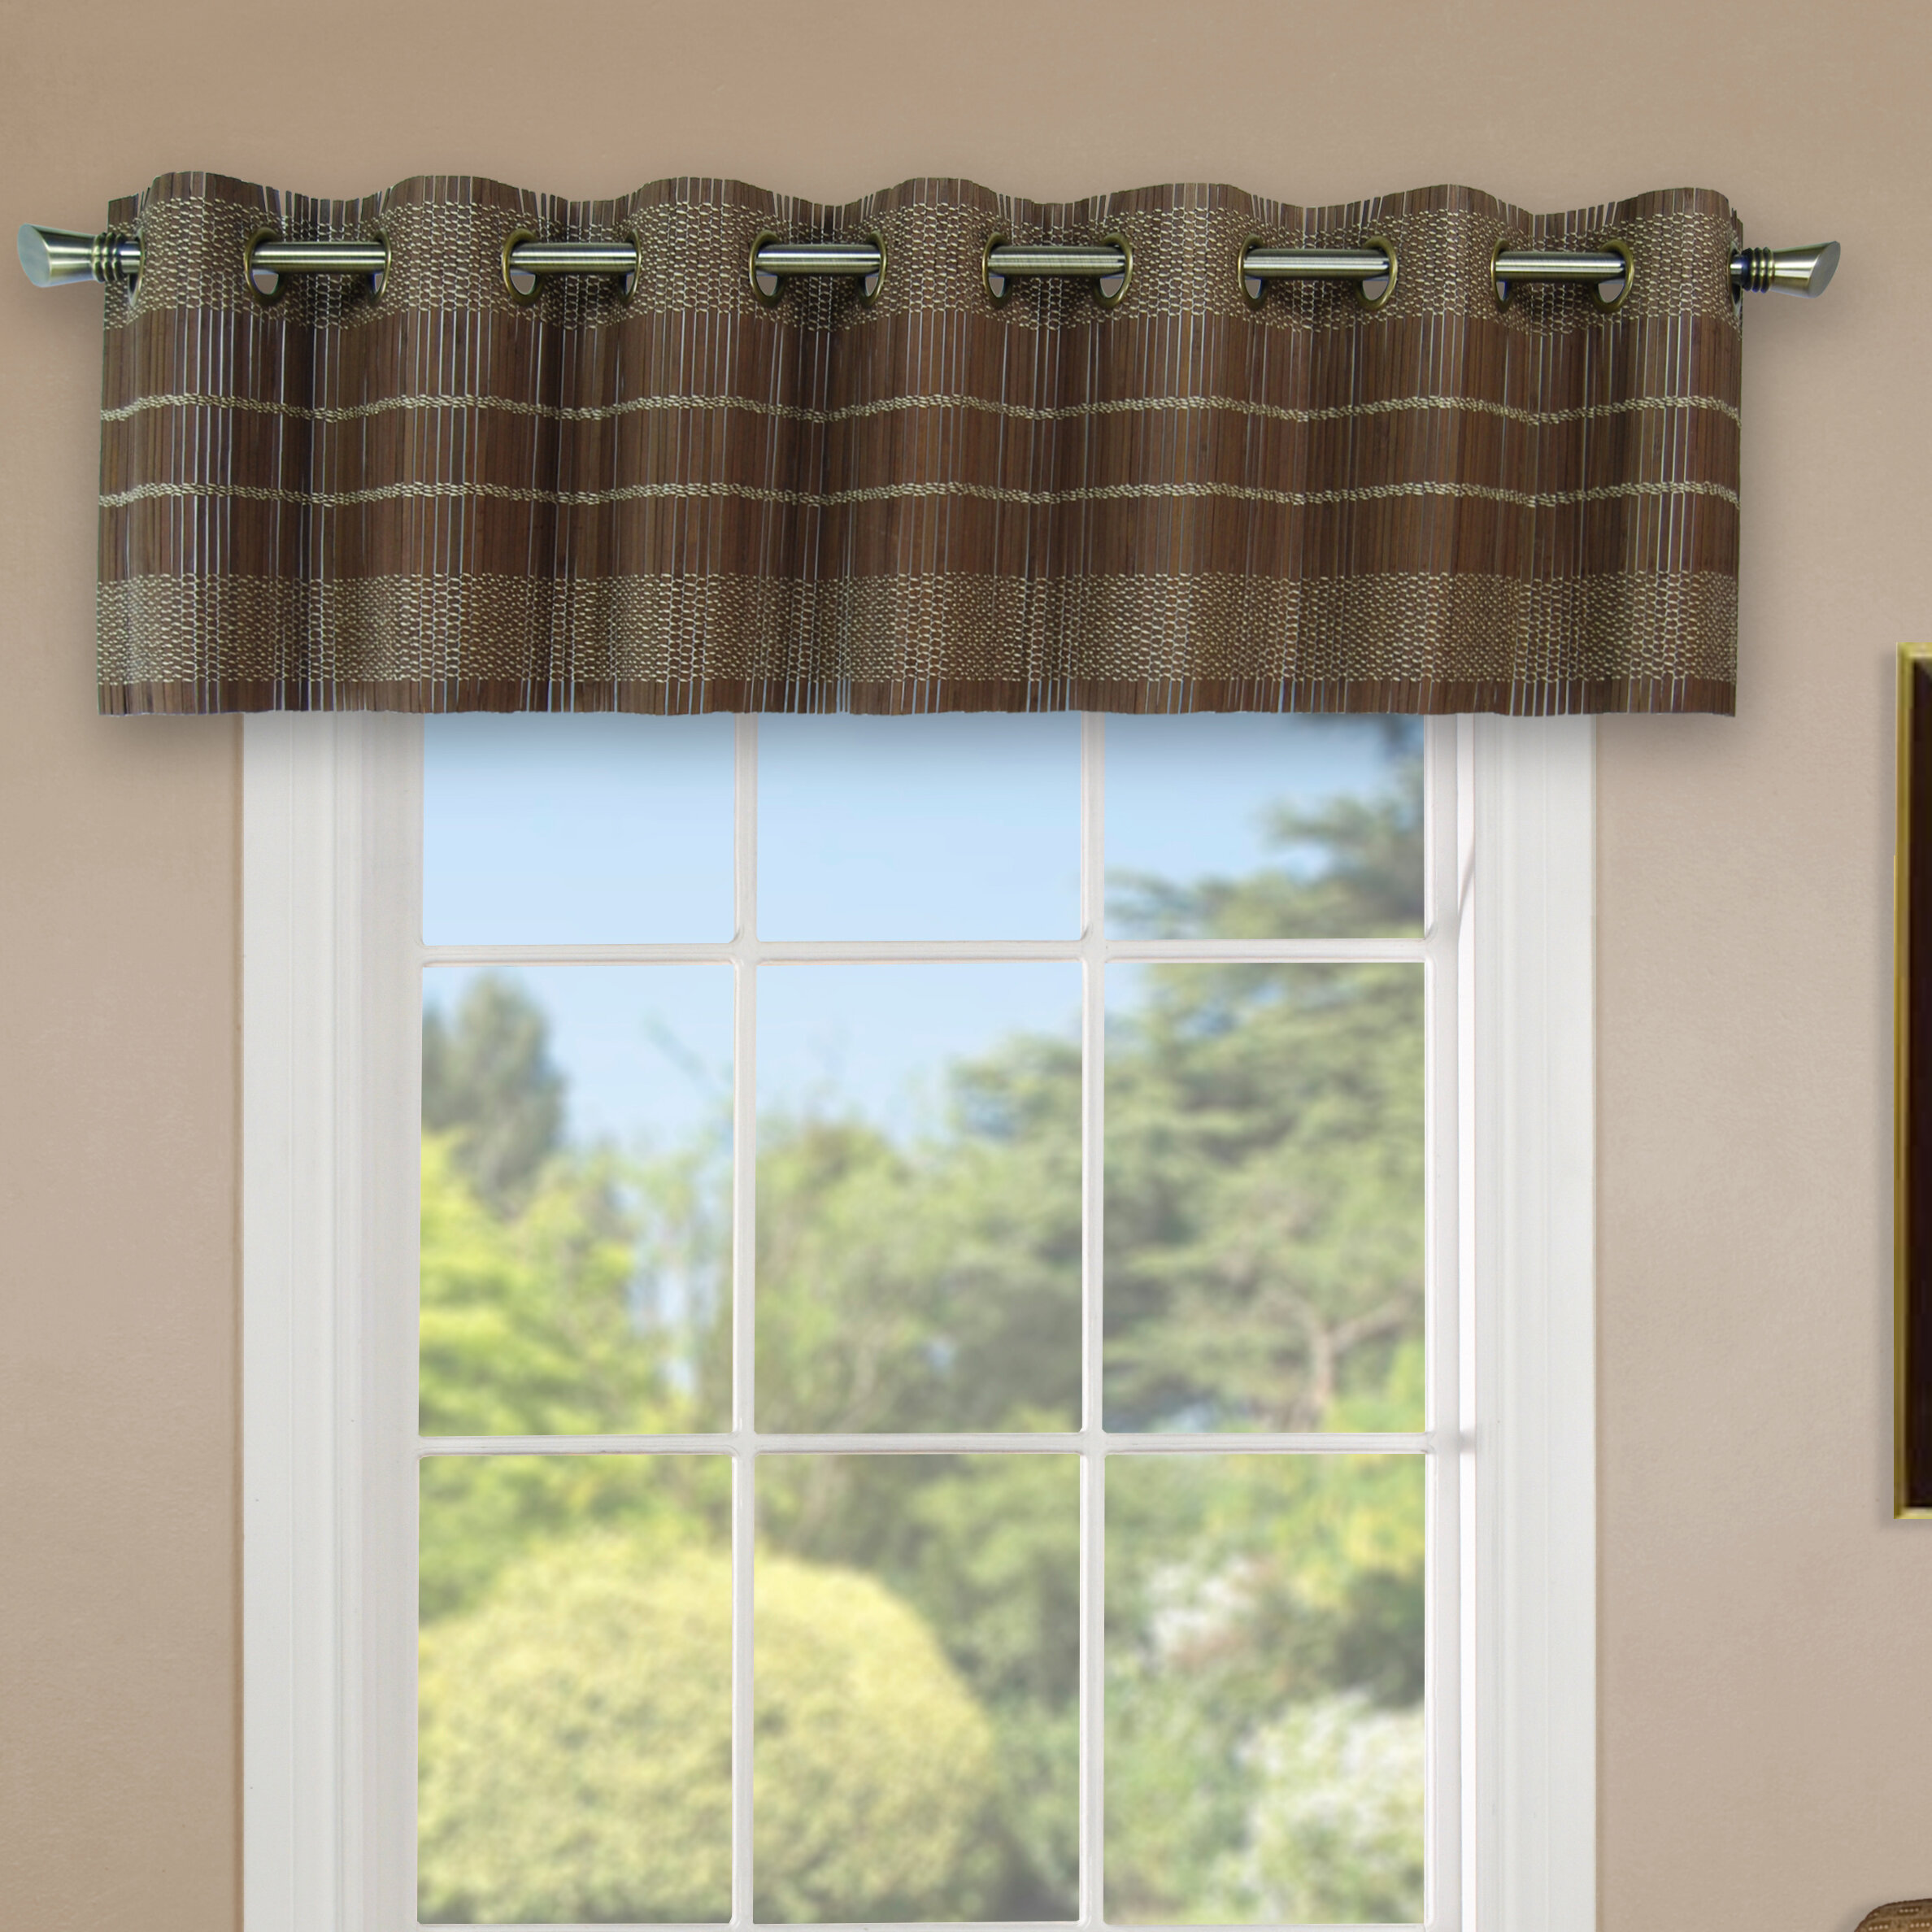 living class gold from sheer valance touch of window pair a embroidey curtains leaf patterned grommet infinity compromise treatments room fresh